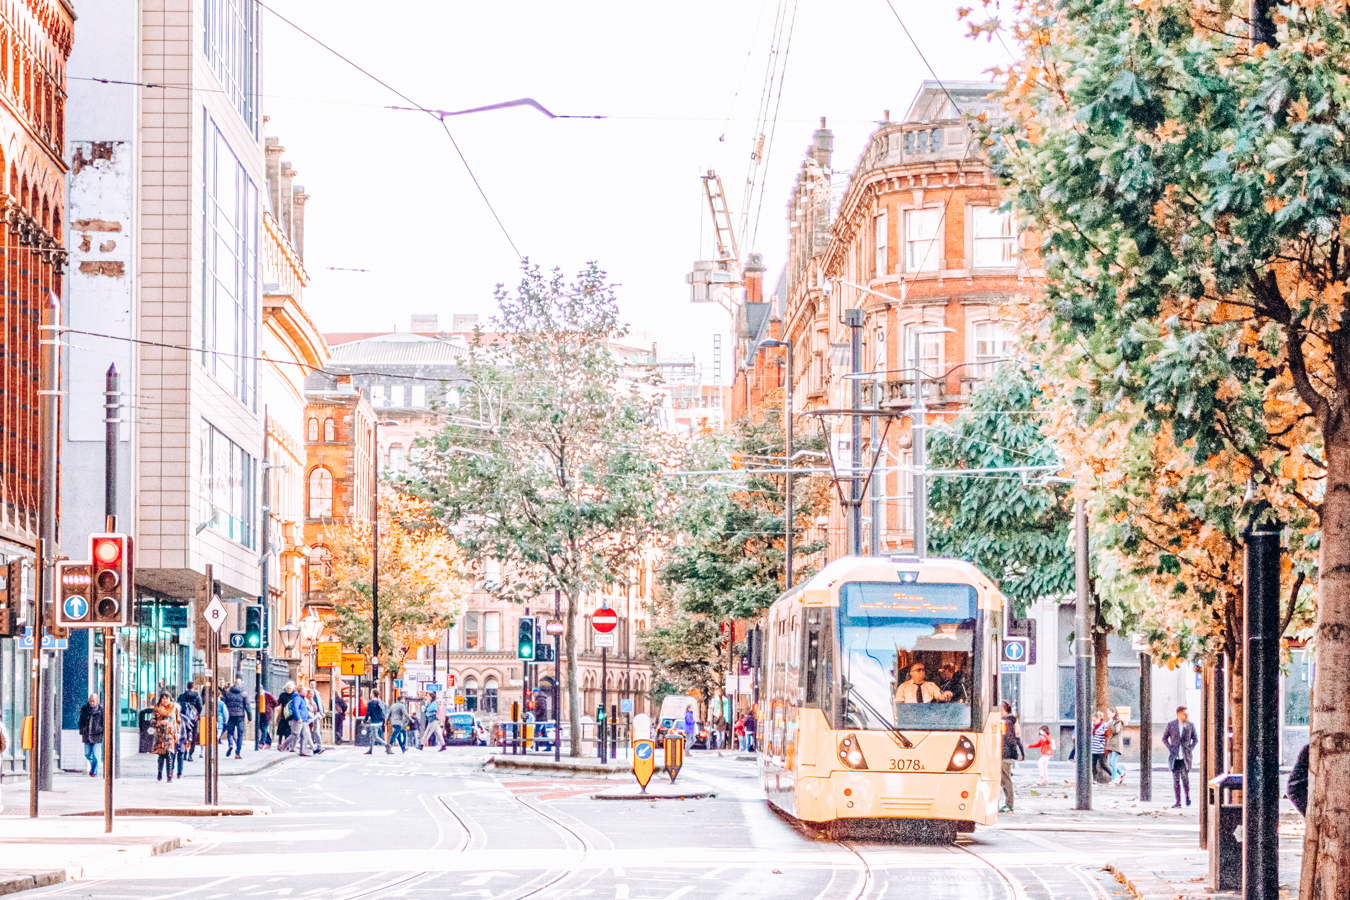 Street with a tram in Manchester